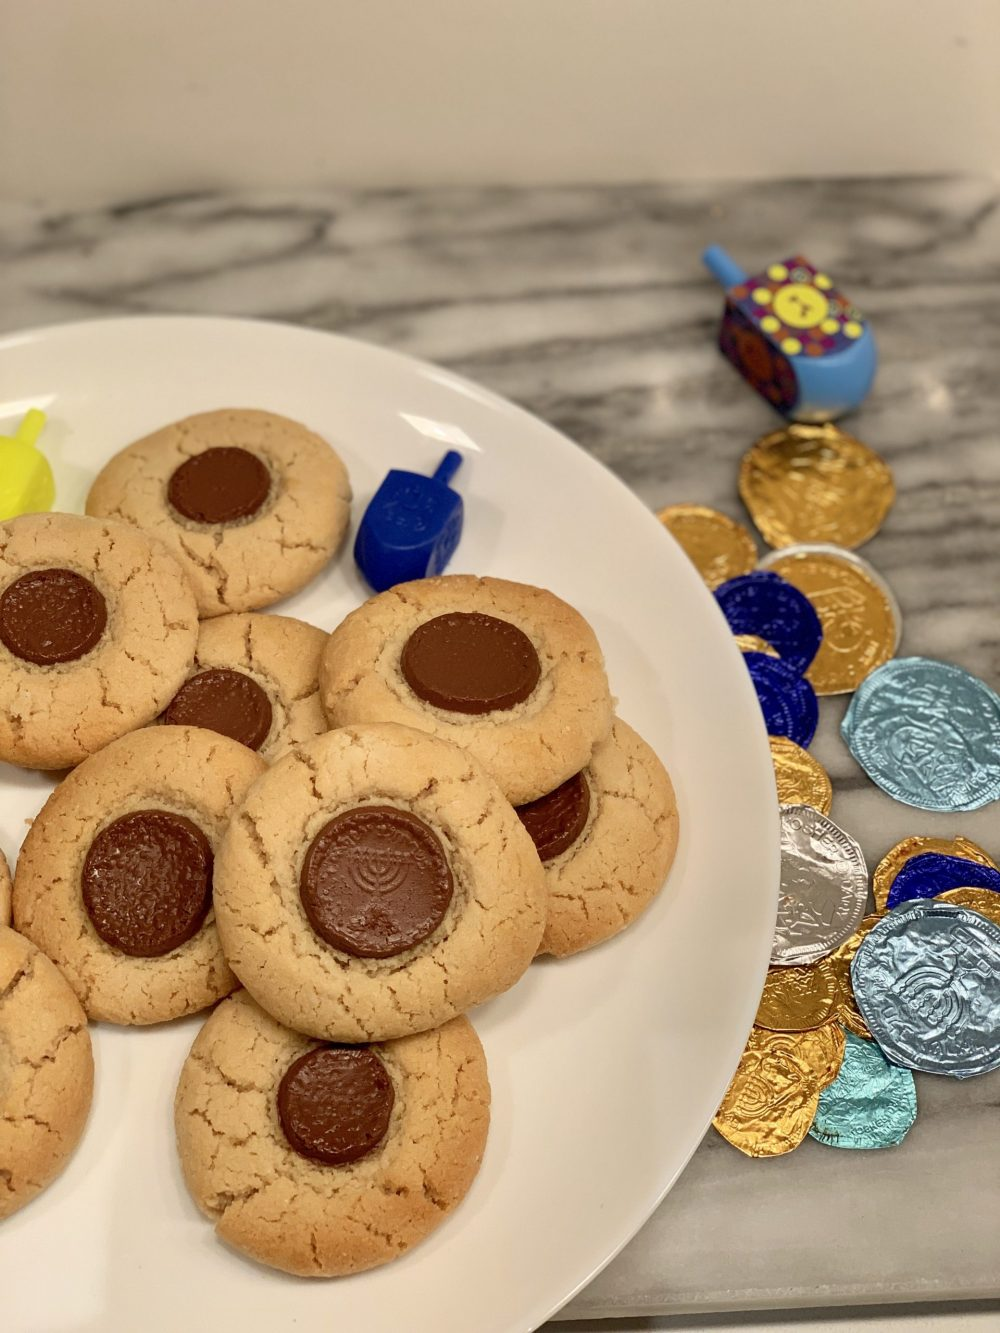 Hanukkah Recipe You Need To Try by Liz in Los Angeles, Los Angeles Blogger